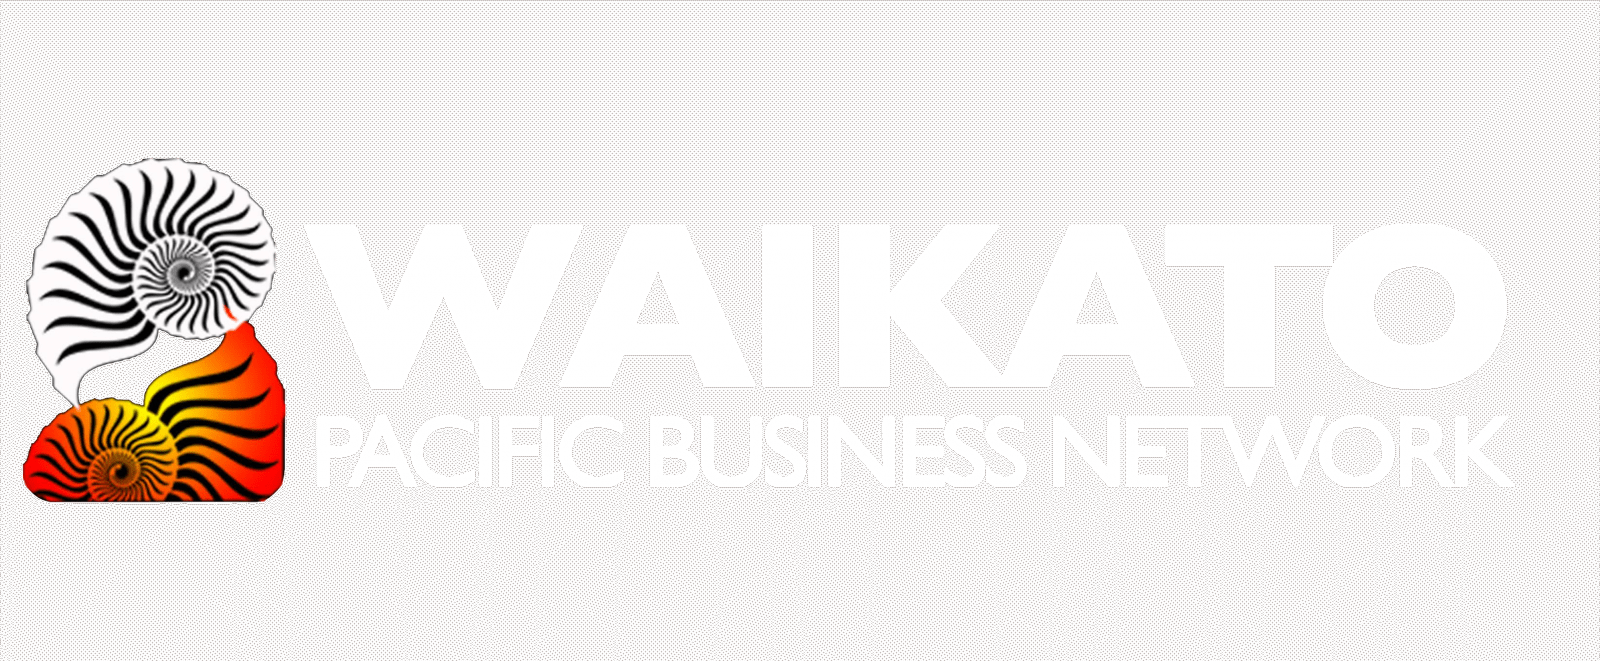 Waikato Pacific Business Network